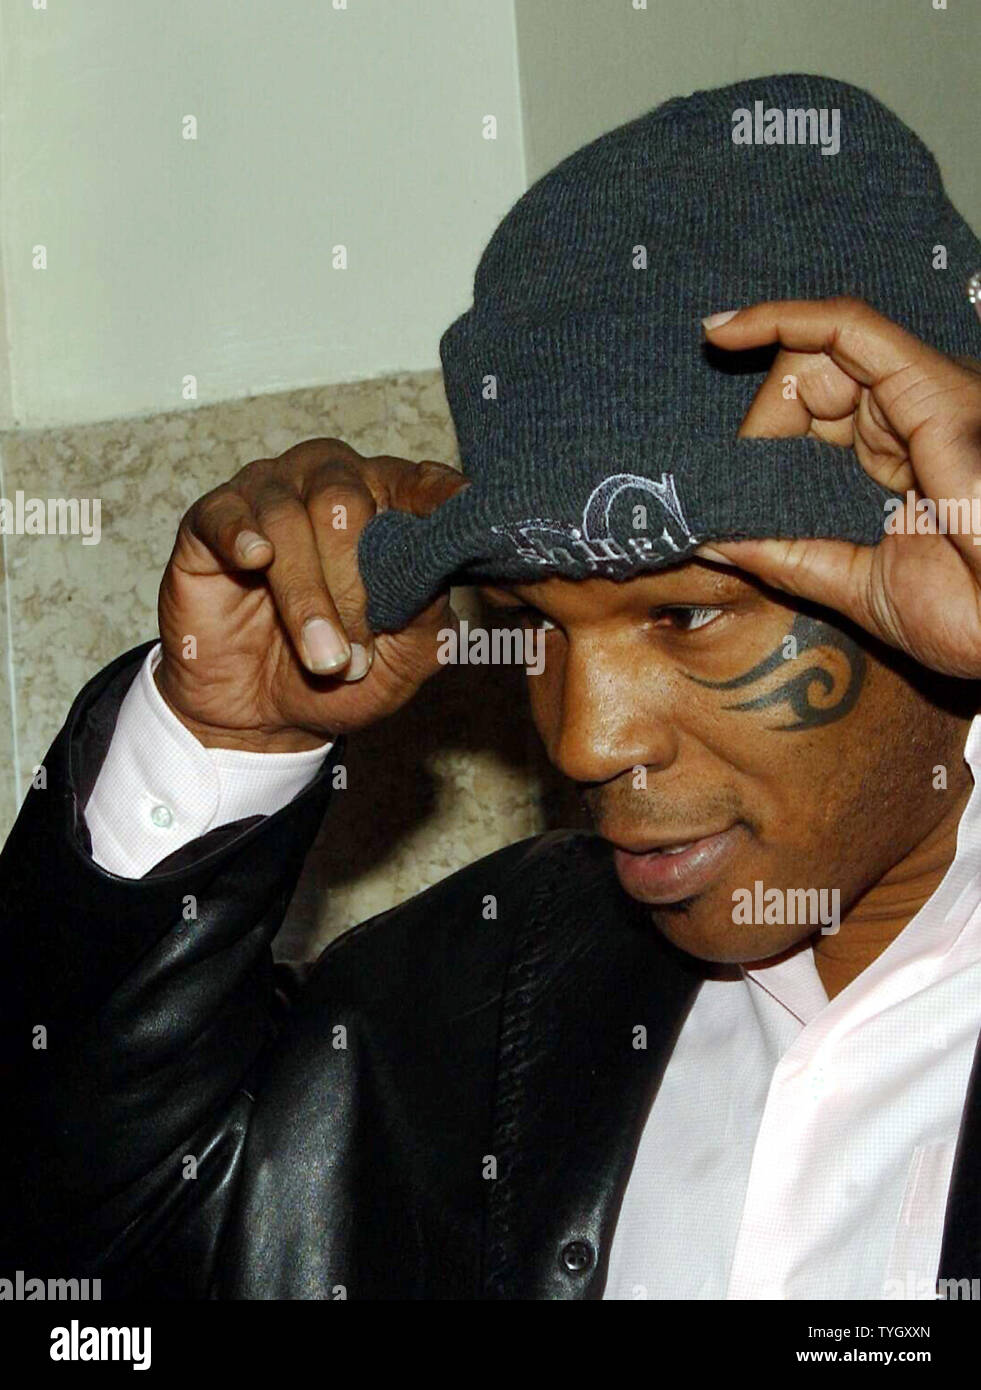 Former Heavyweight boxing champion Mike Tyson arrives at Brooklyn Criminal Court on 12/15/04 to complete his sentencing on assualt charges.The case was closed with Tyson having completed community service work.  (UPI Photo/Ezio Petersen) Stock Photo